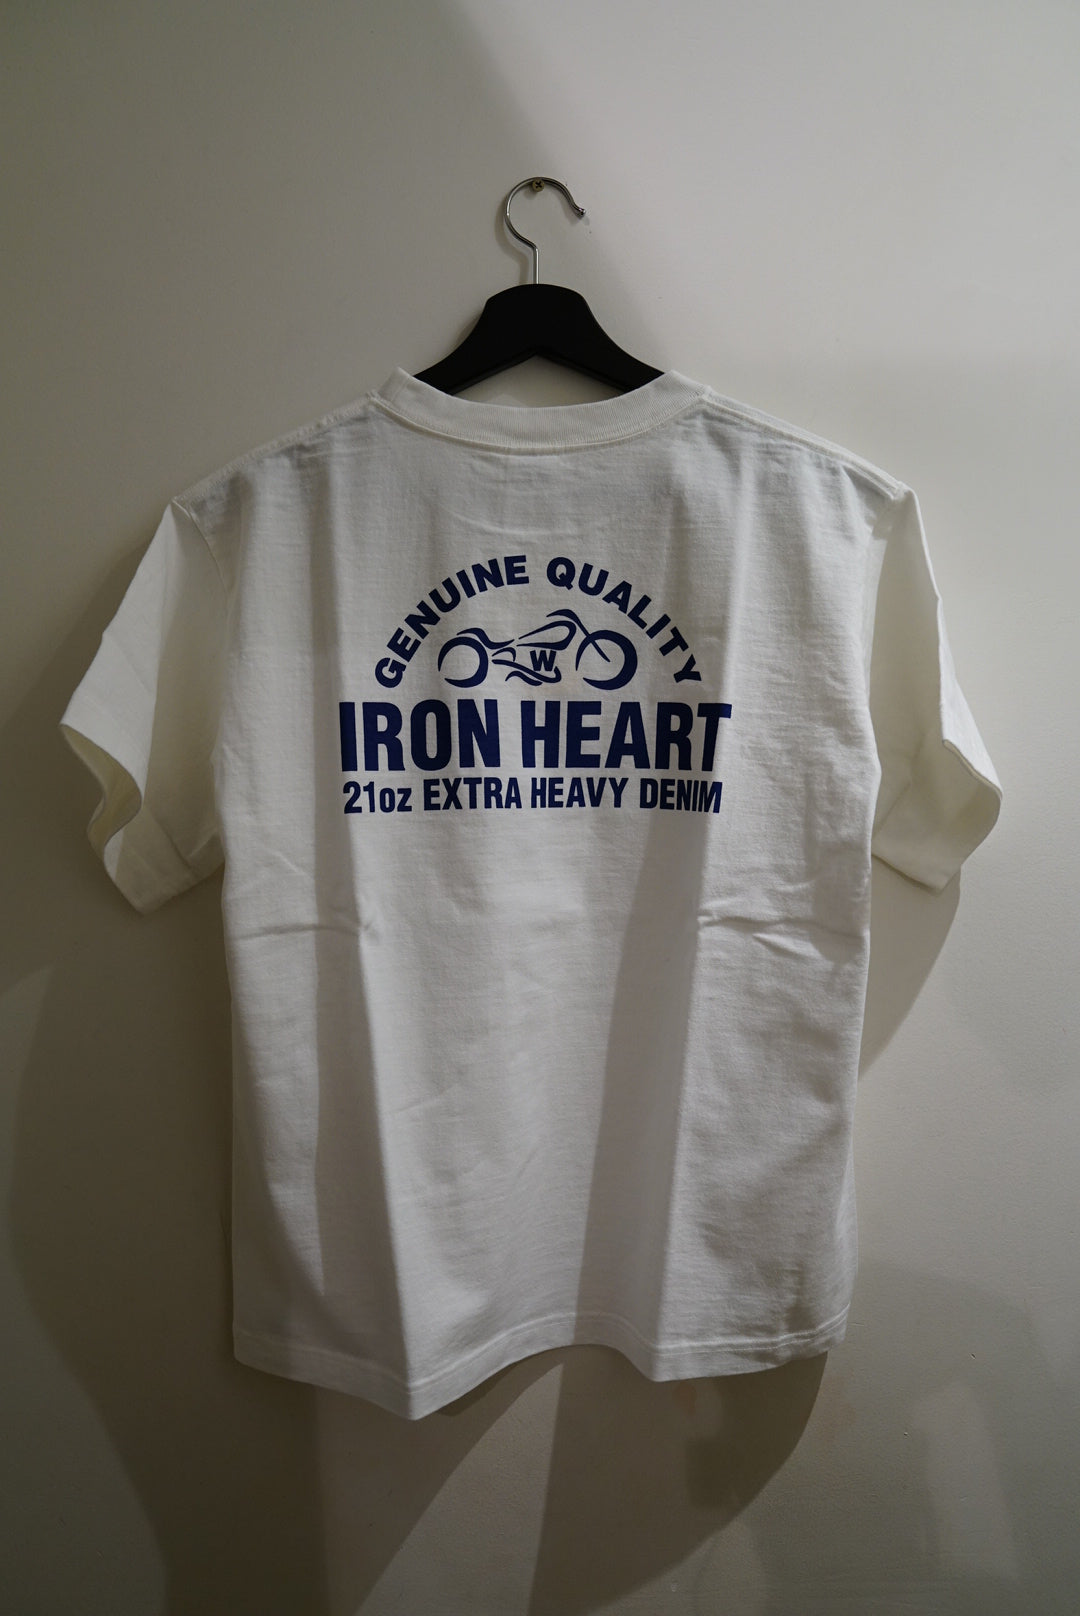 Iron Heart 7.5oz tee